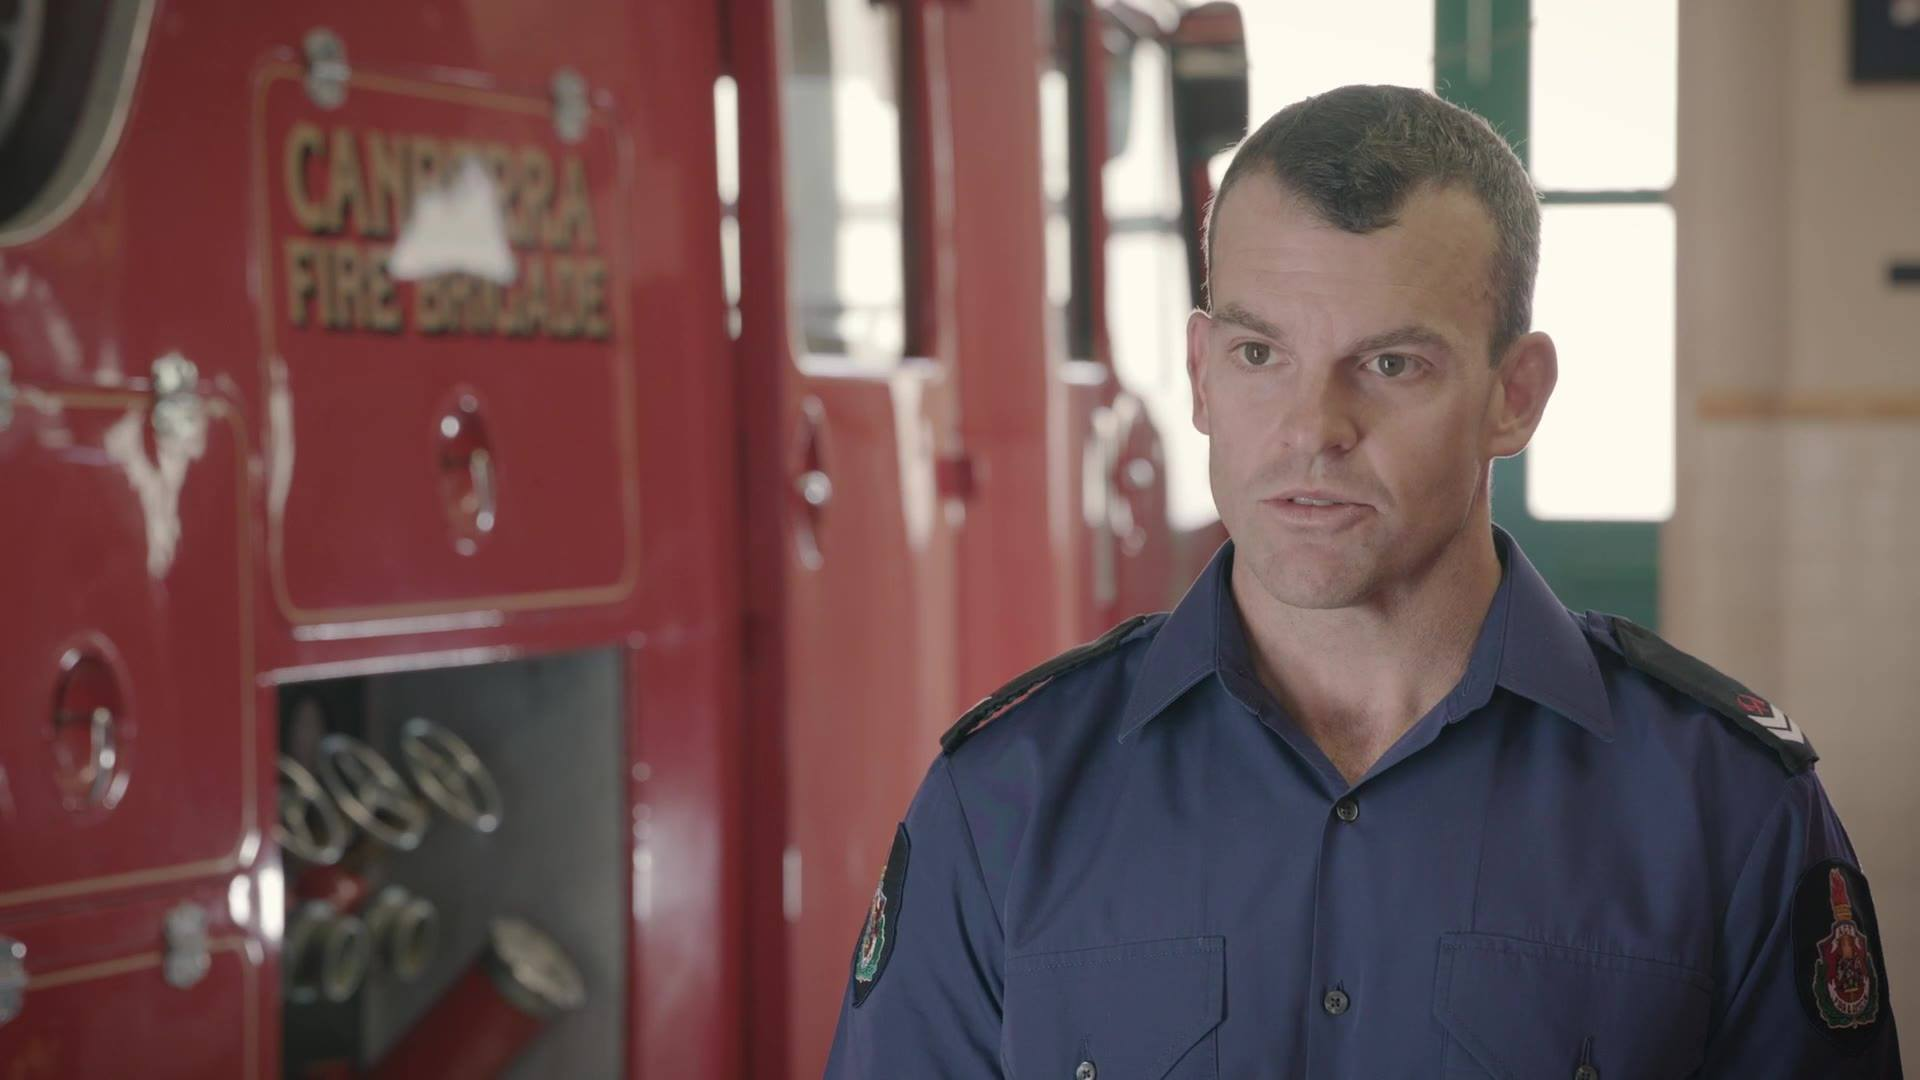 ACT Fire & Rescue, become a Firefighter - Dan Kite